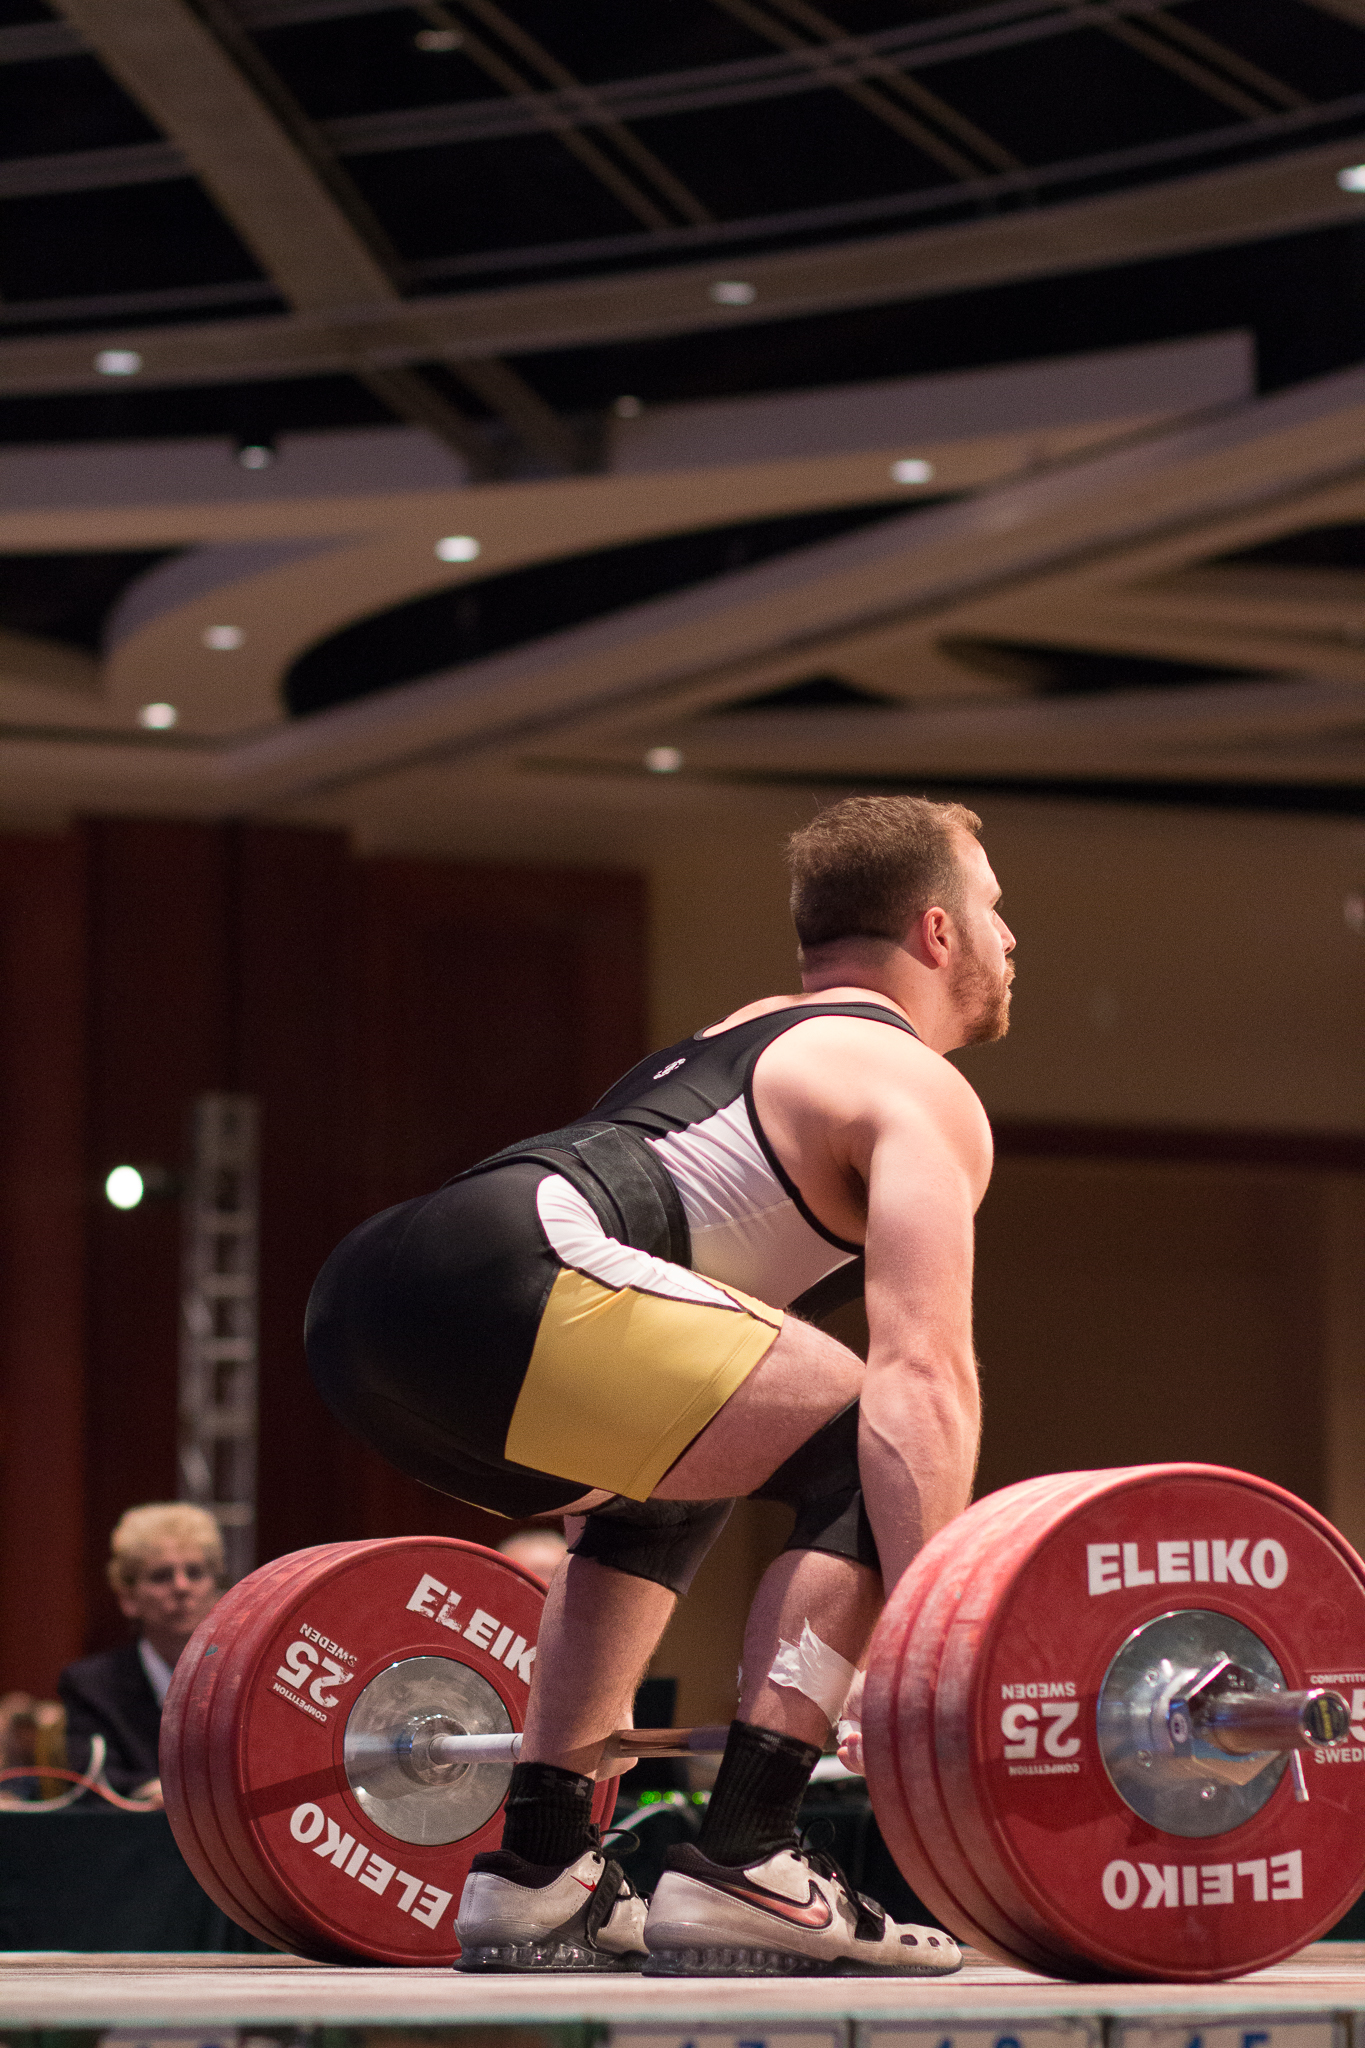 session-a-favorites-american-open-2016-weightlifting-photography (32 of 38).jpg